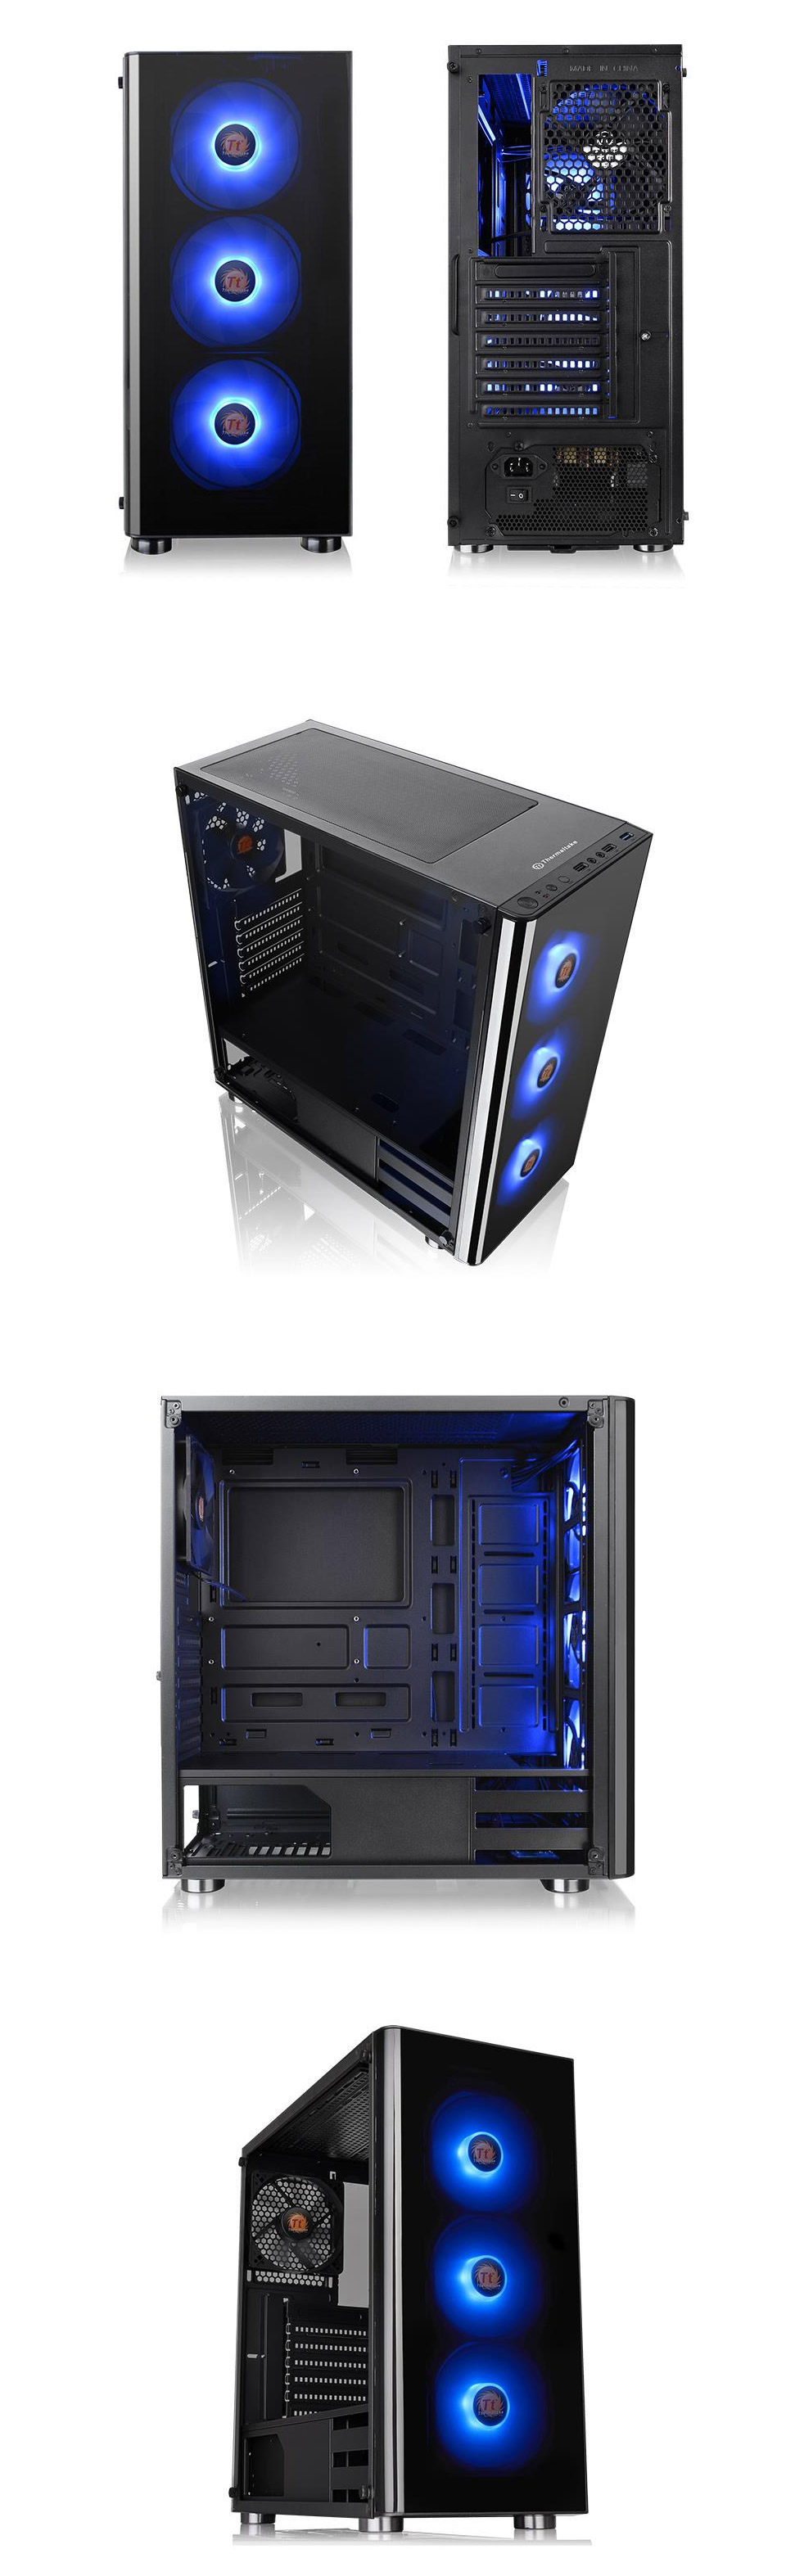 Thermaltake V200 TG RGB Edition Mid Tower Chassis with 500W PSU